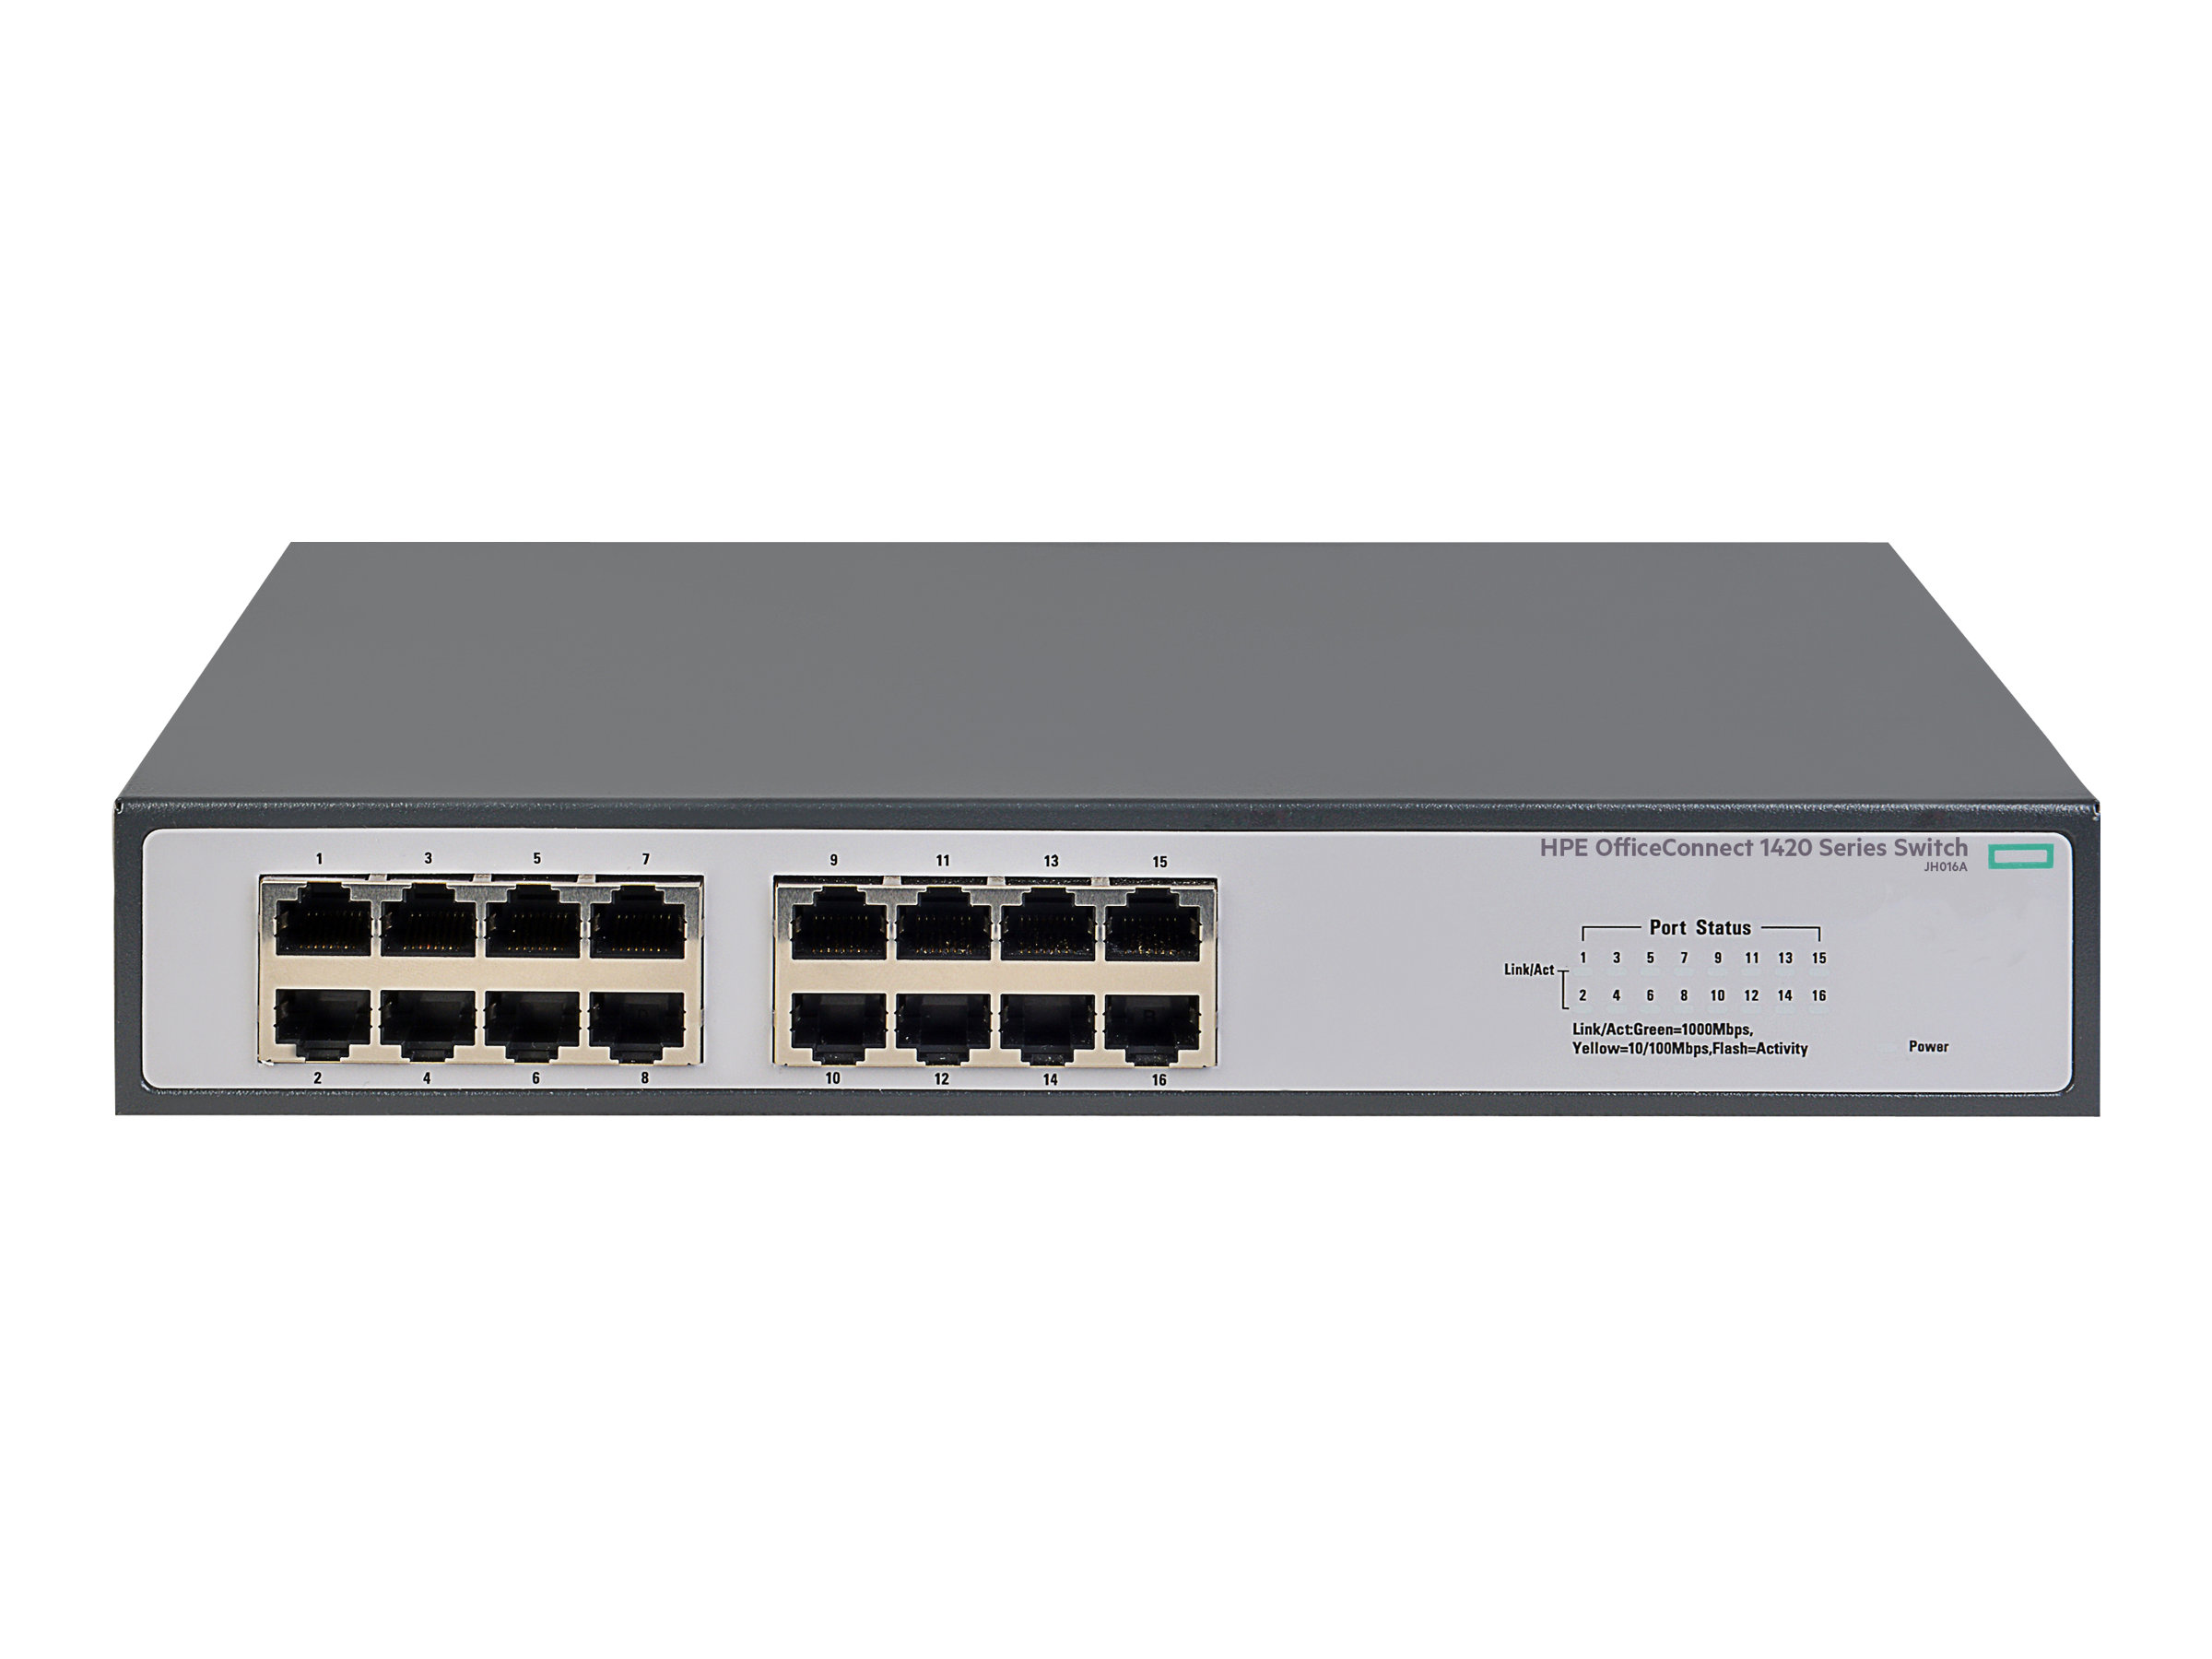 HPE 1420-16G - switch - 16 ports - unmanaged - rack-mountable